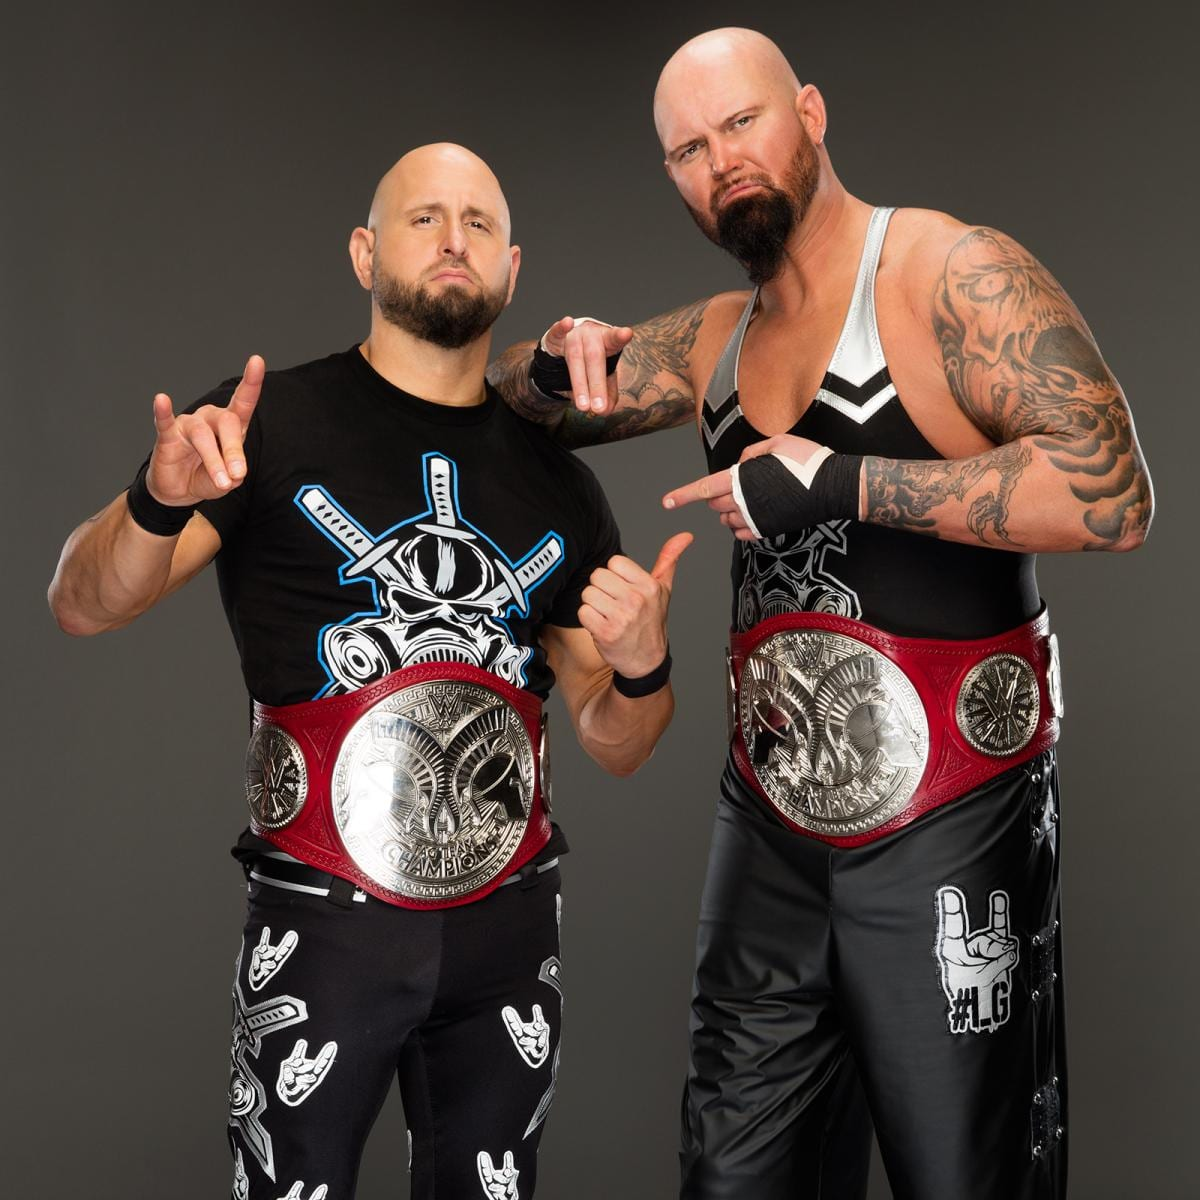 Luke Gallows & Karl Anderson as the Raw Tag Team Champions